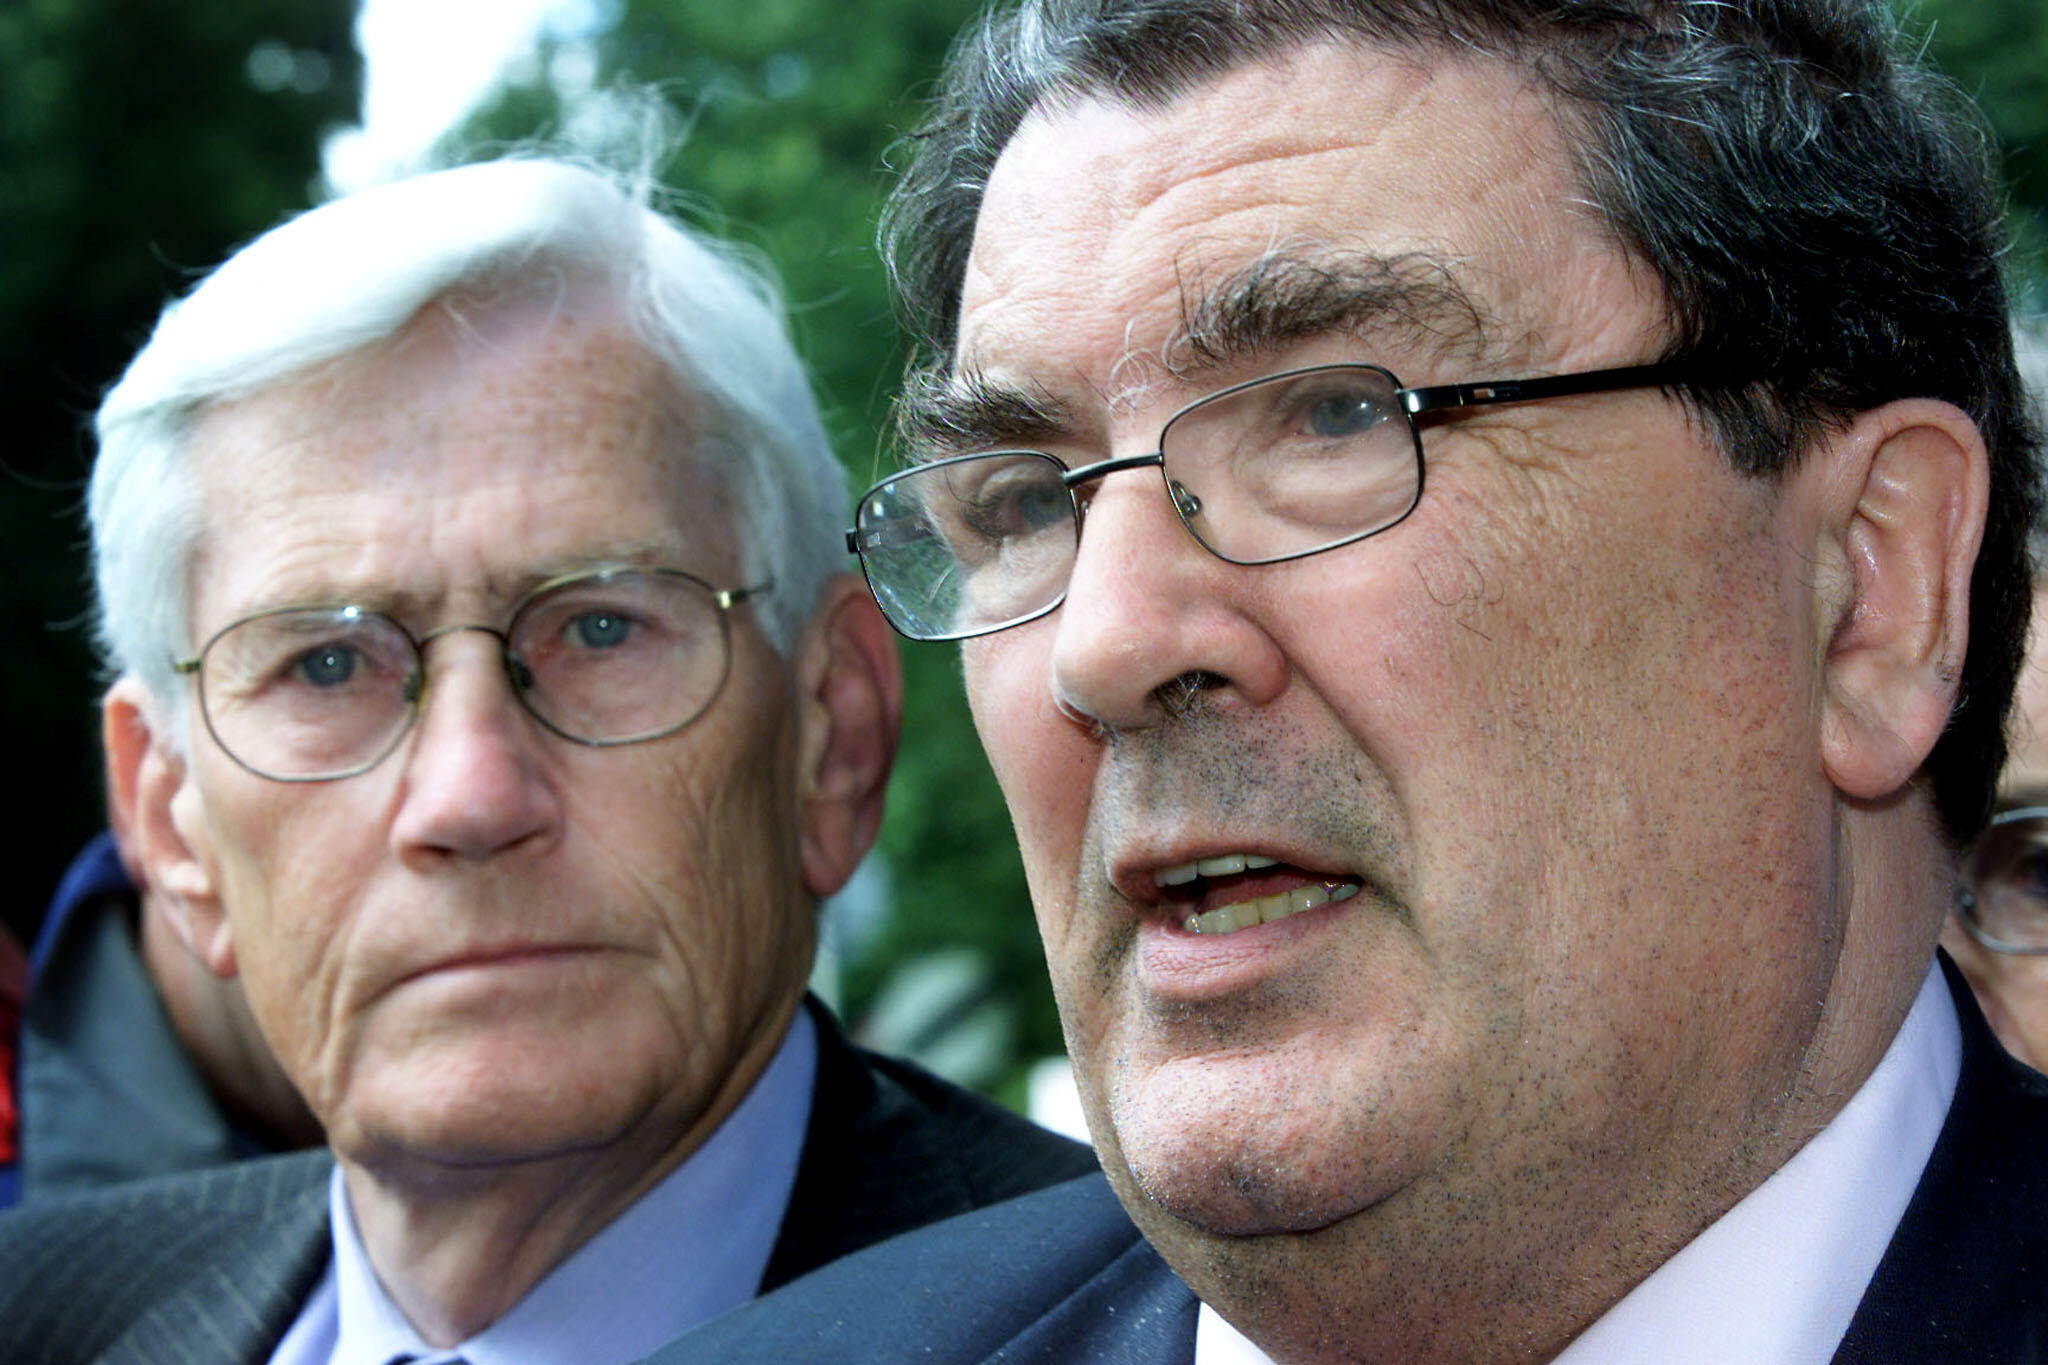 SDLP's John Hume (R) and Seamus Mallon talk to reporters at Weston Park in Staffordshire on July 13, 2001.  Britain and Ireland reconvened last-gasp Northern Ireland peace talks on Friday after more than 100 police officers were hurt as Catholic rioters went on the rampage in the province overnight/File Photo